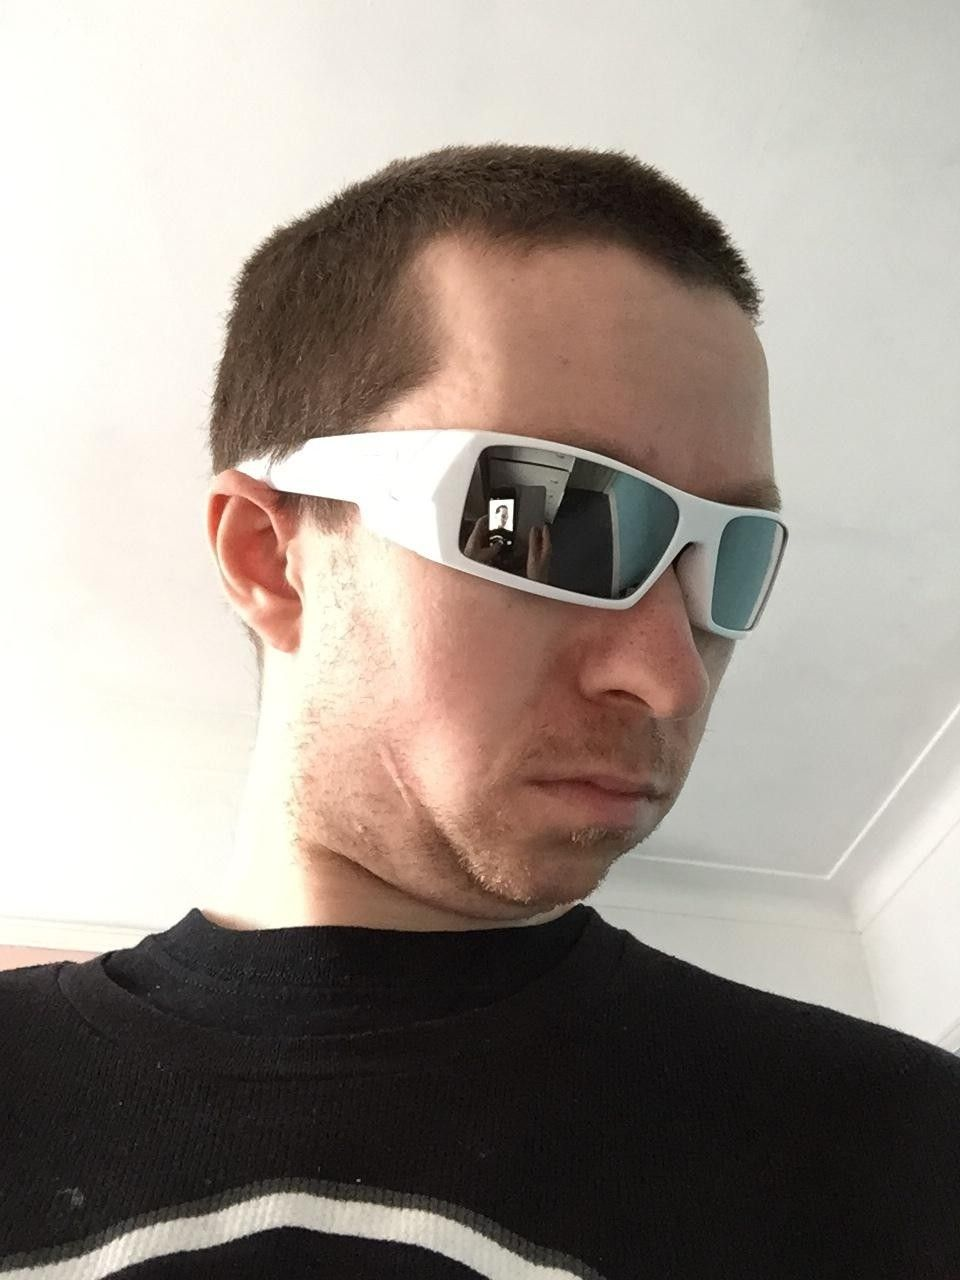 Best suited Oakleys for me - INxo1eo.jpg